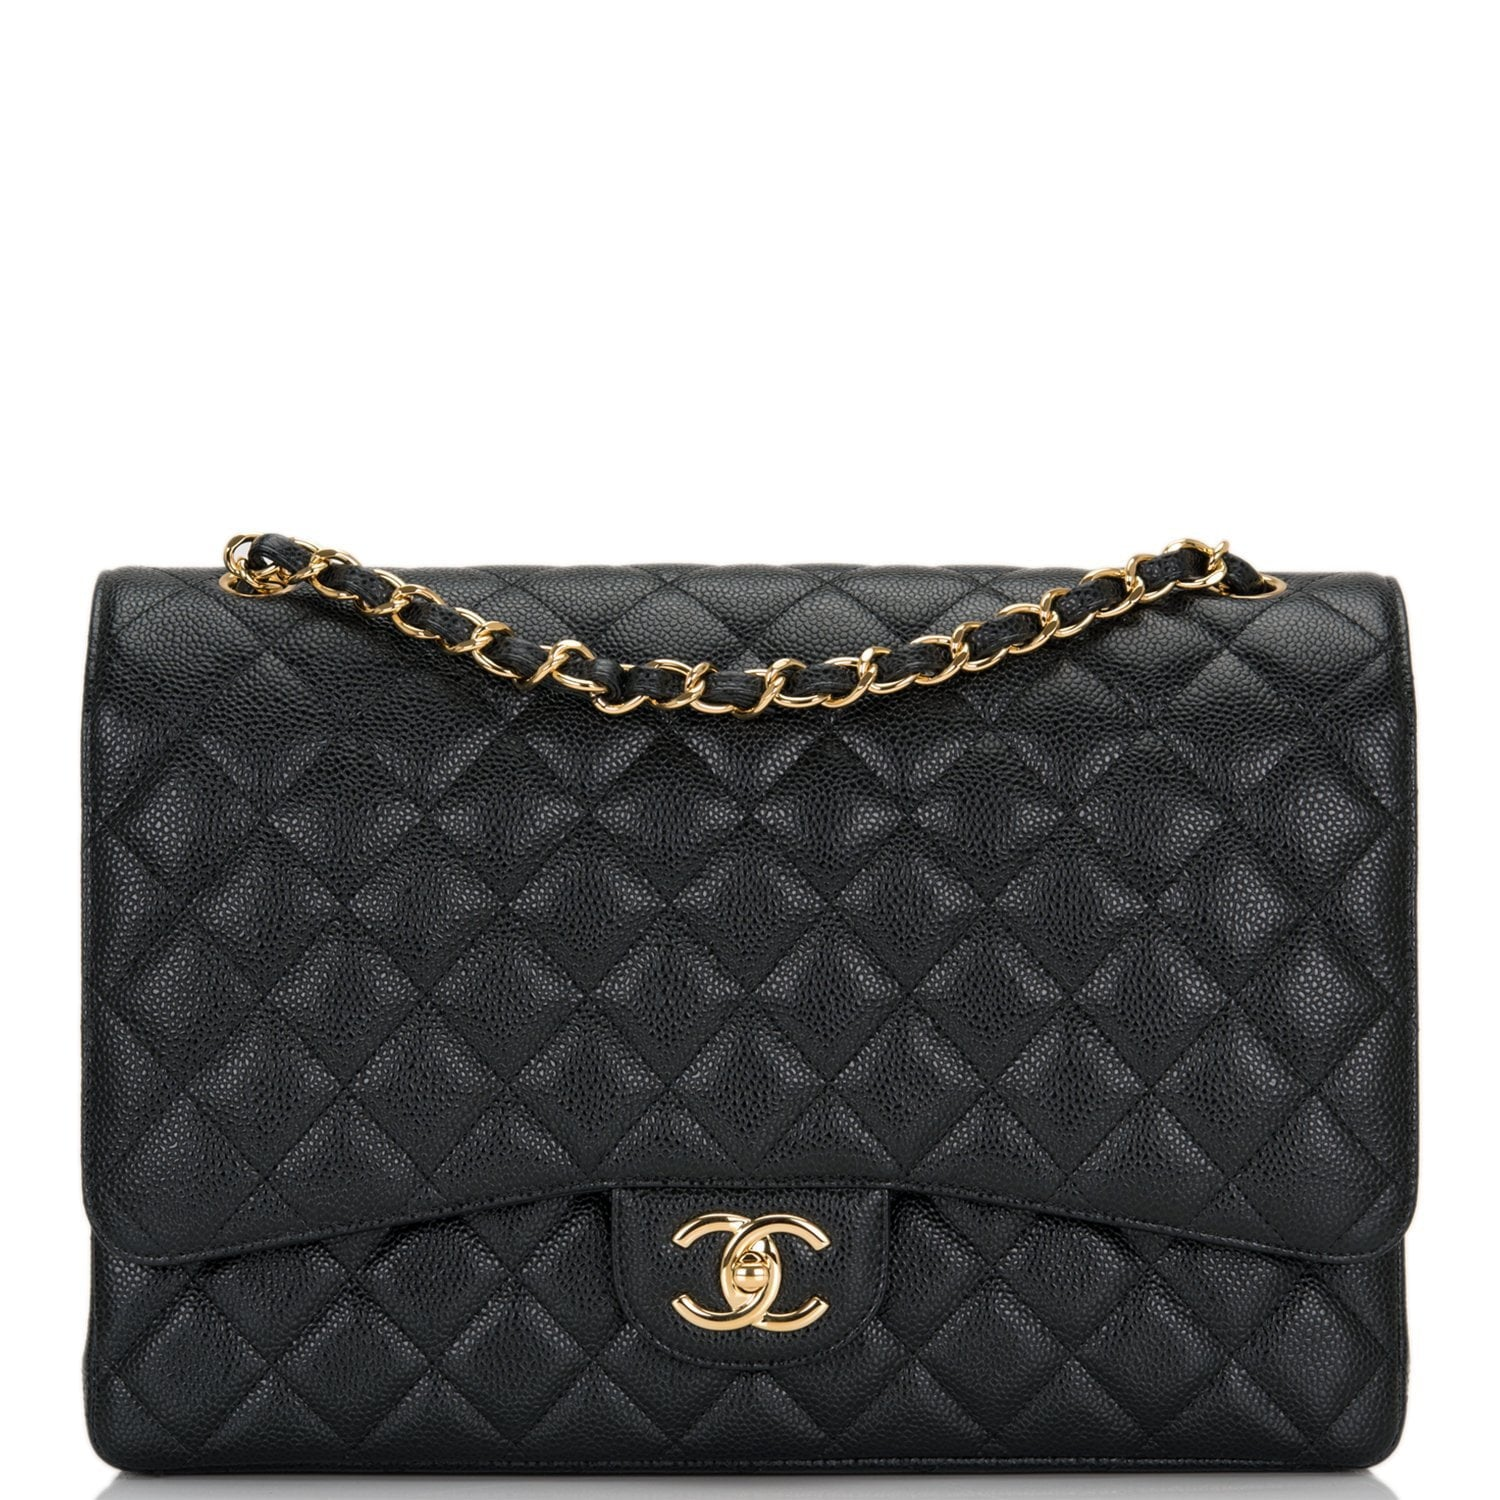 309adaae8ff0ec Chanel Black Quilted Caviar Maxi Classic Double Flap Bag – Madison Avenue  Couture